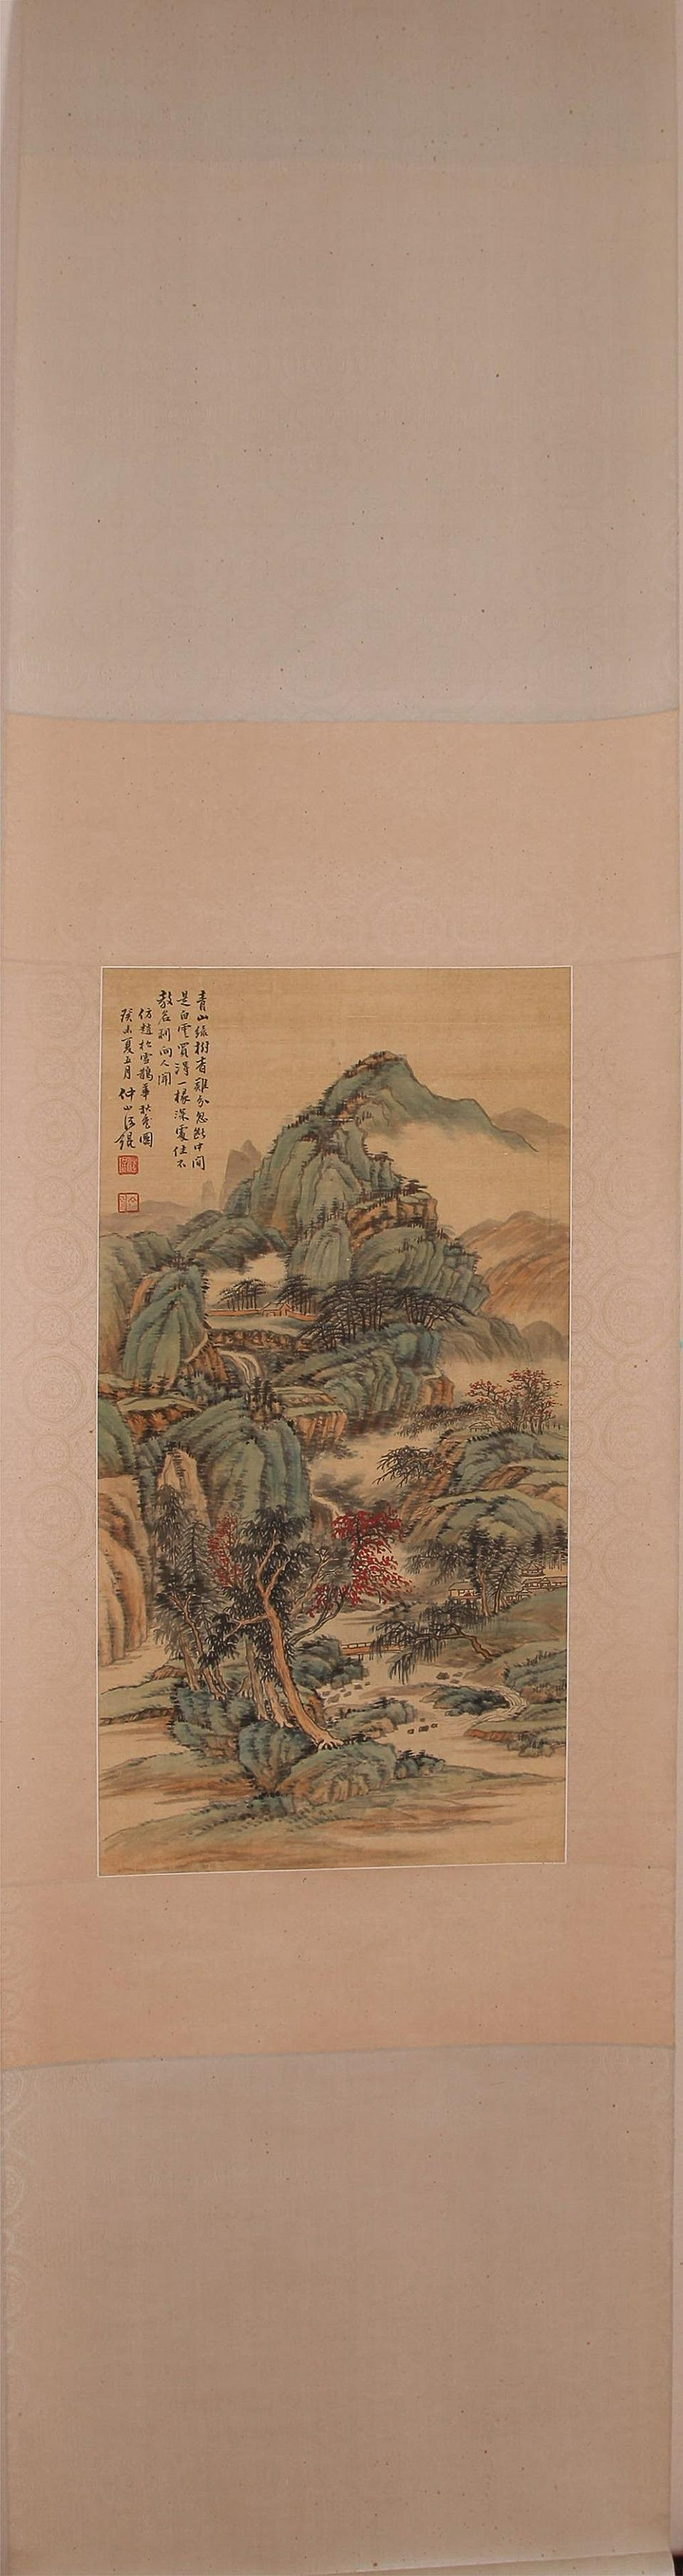 A 'WANGKUN' MARK  LANDSCAPE    VERTICAL AXIS PAINTING